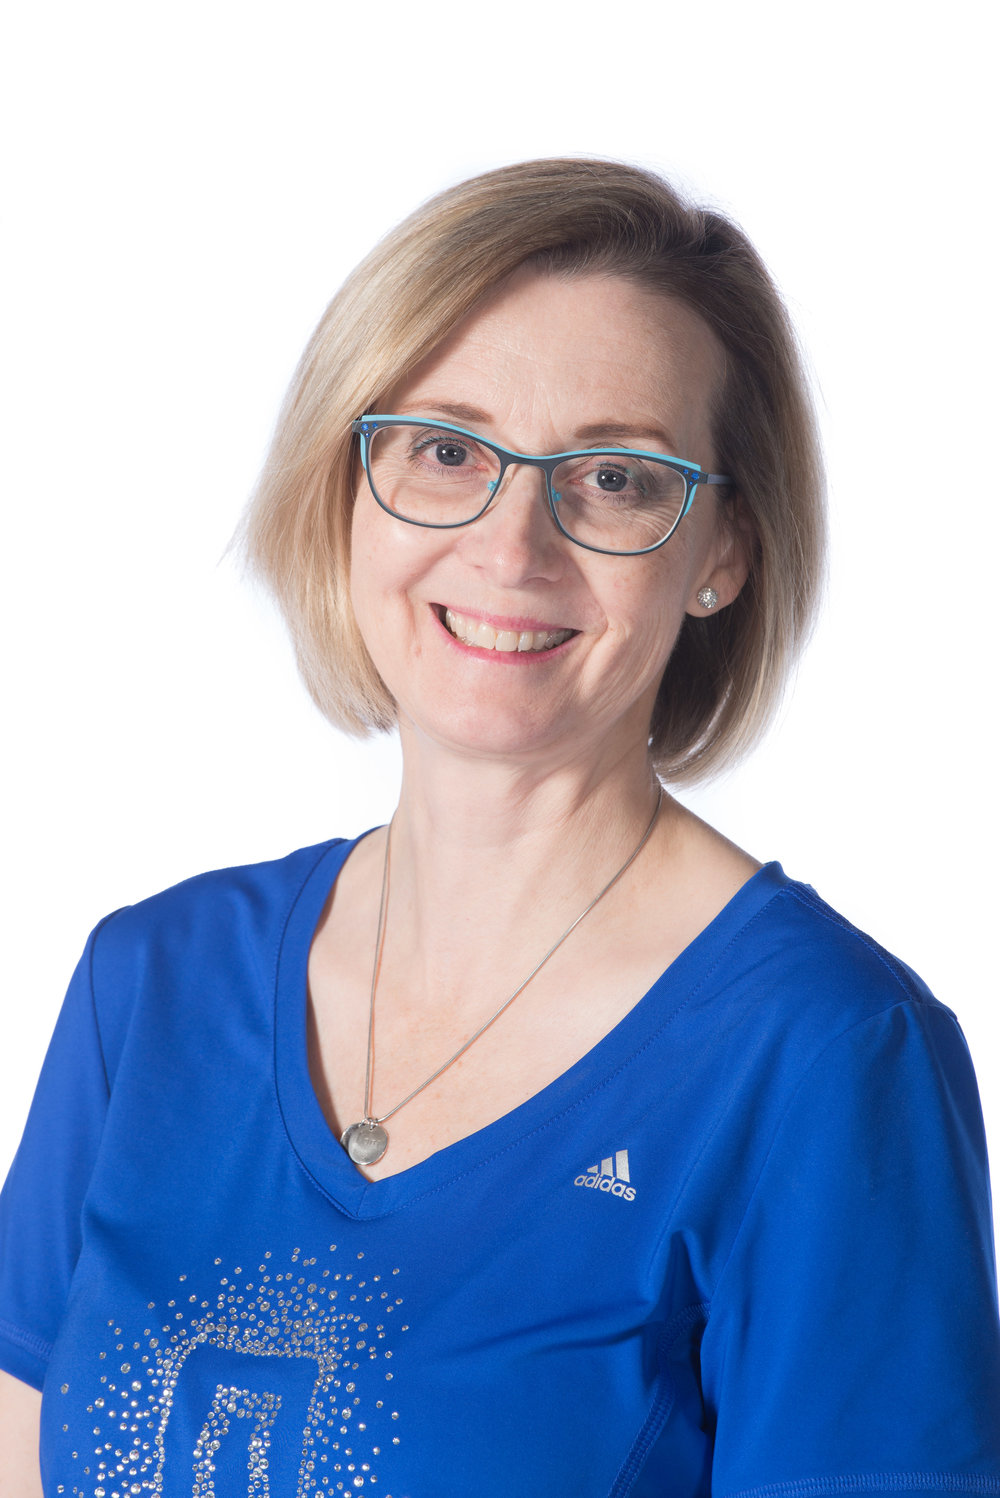 Competitive Head Coach     Dana Brass coached gymnastics in Saskatoon from 1986–2000, before spending 14 years as a coach for Cirque du Soleil.  She has now returned and settled in Saskatoon. Marian is fortunate to have her back.